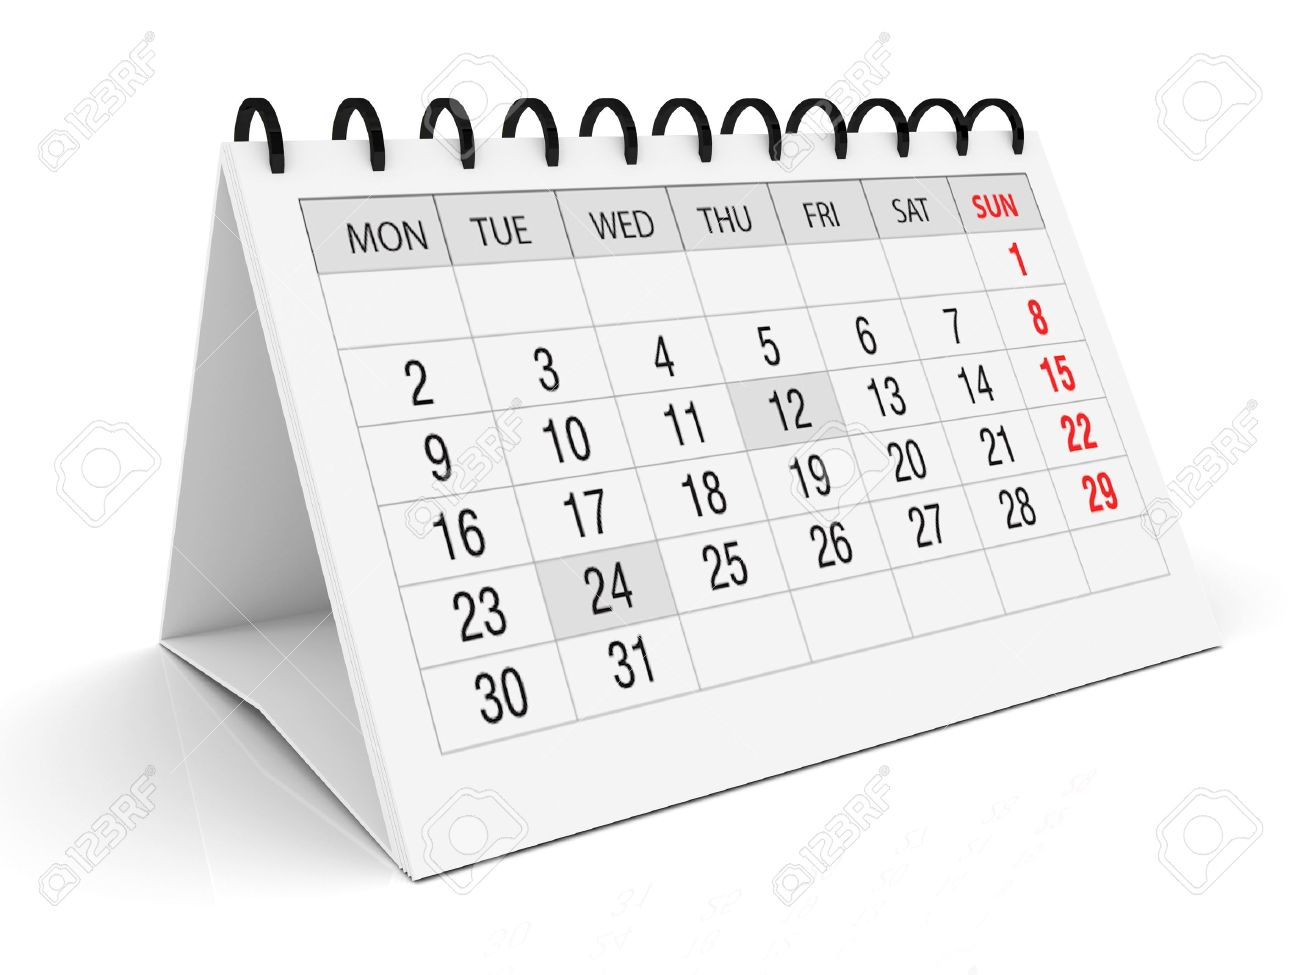 Calendar For Office On White Background Stock Photo, Picture And ...